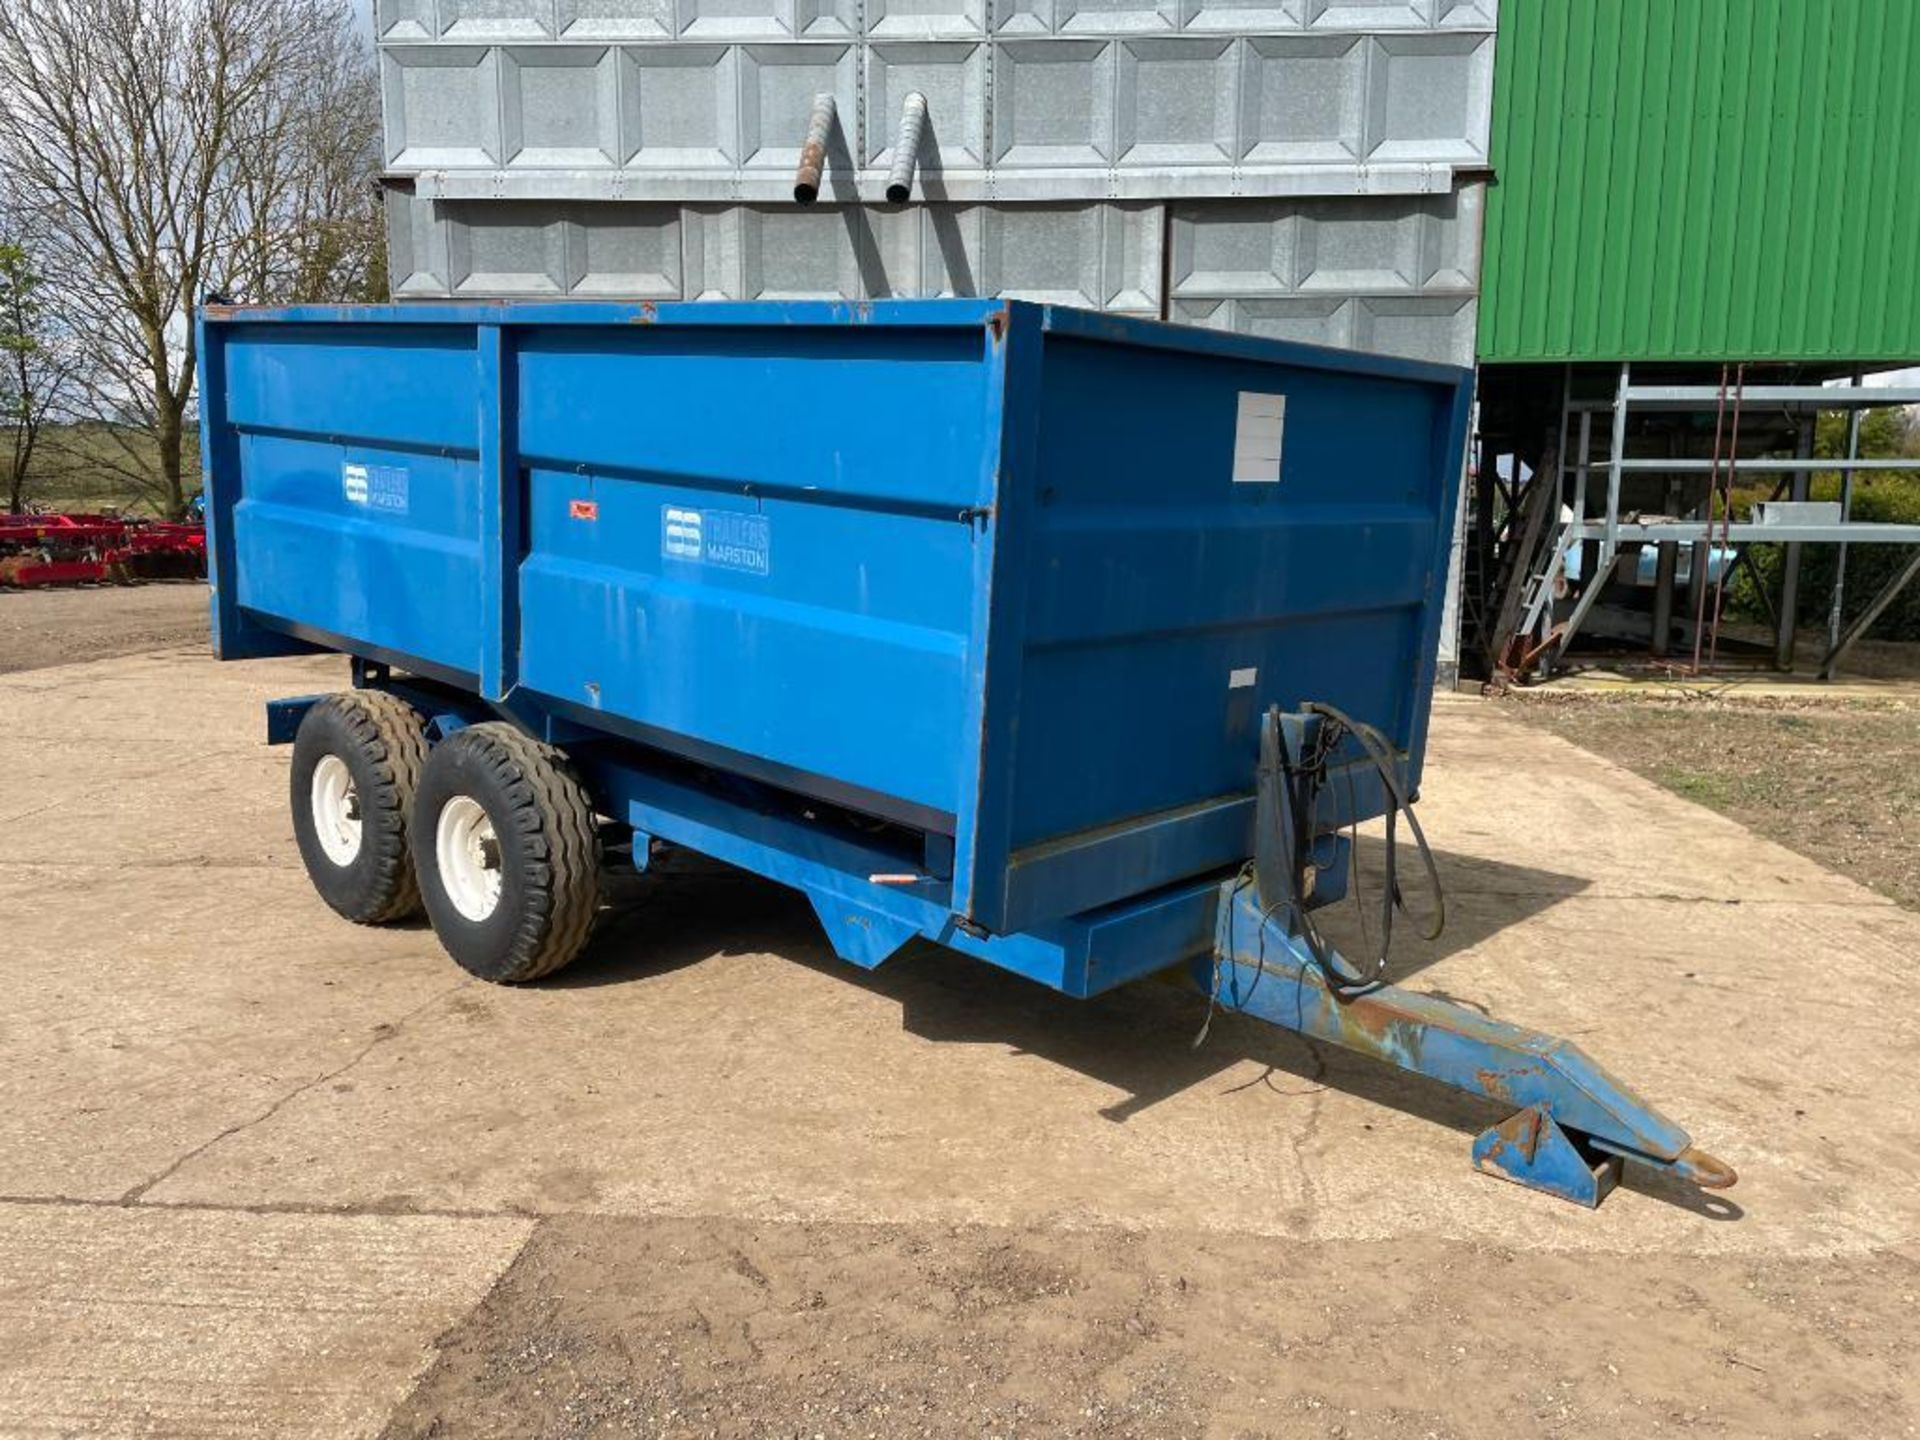 1986 AS Marston 8t twin axle grain trailer, manual tailgate and grain chute on 12.5/80-15.3 wheels a - Image 2 of 14